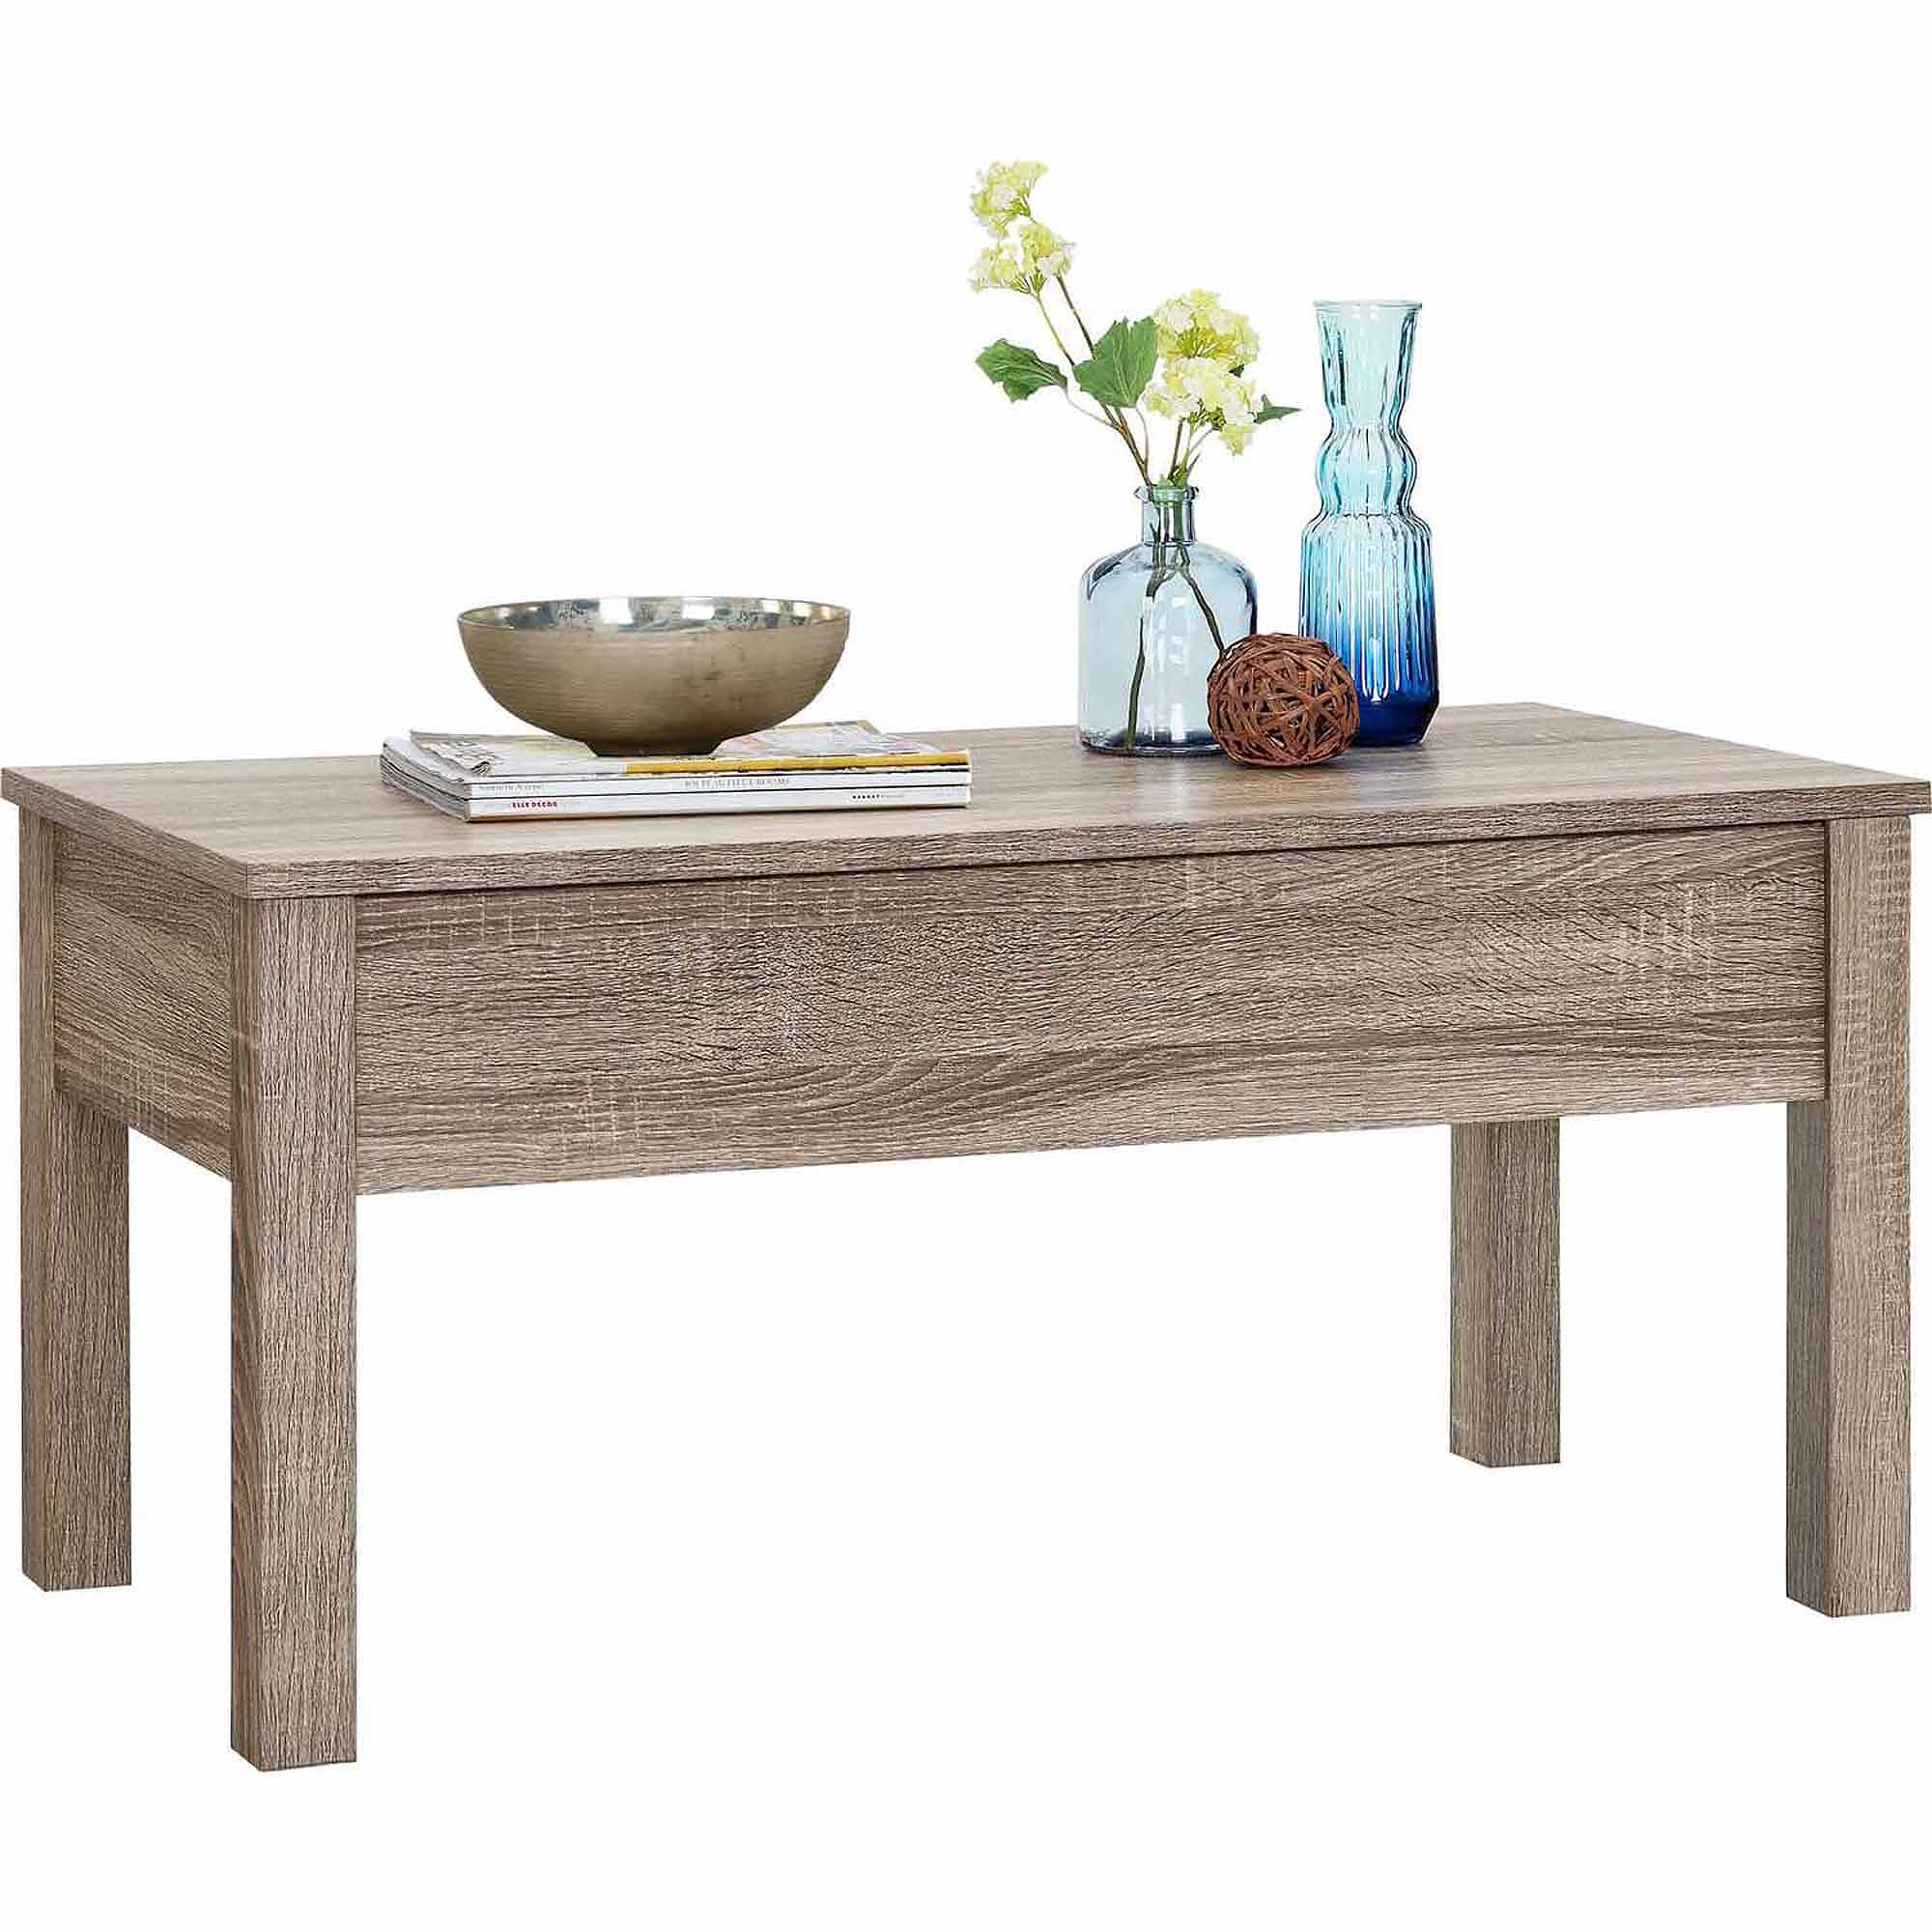 furniture beautiful collection coffee table better homes and gardens target mirrored accent white end tables lift top with storage threshold turquoise butcher block slab bedside